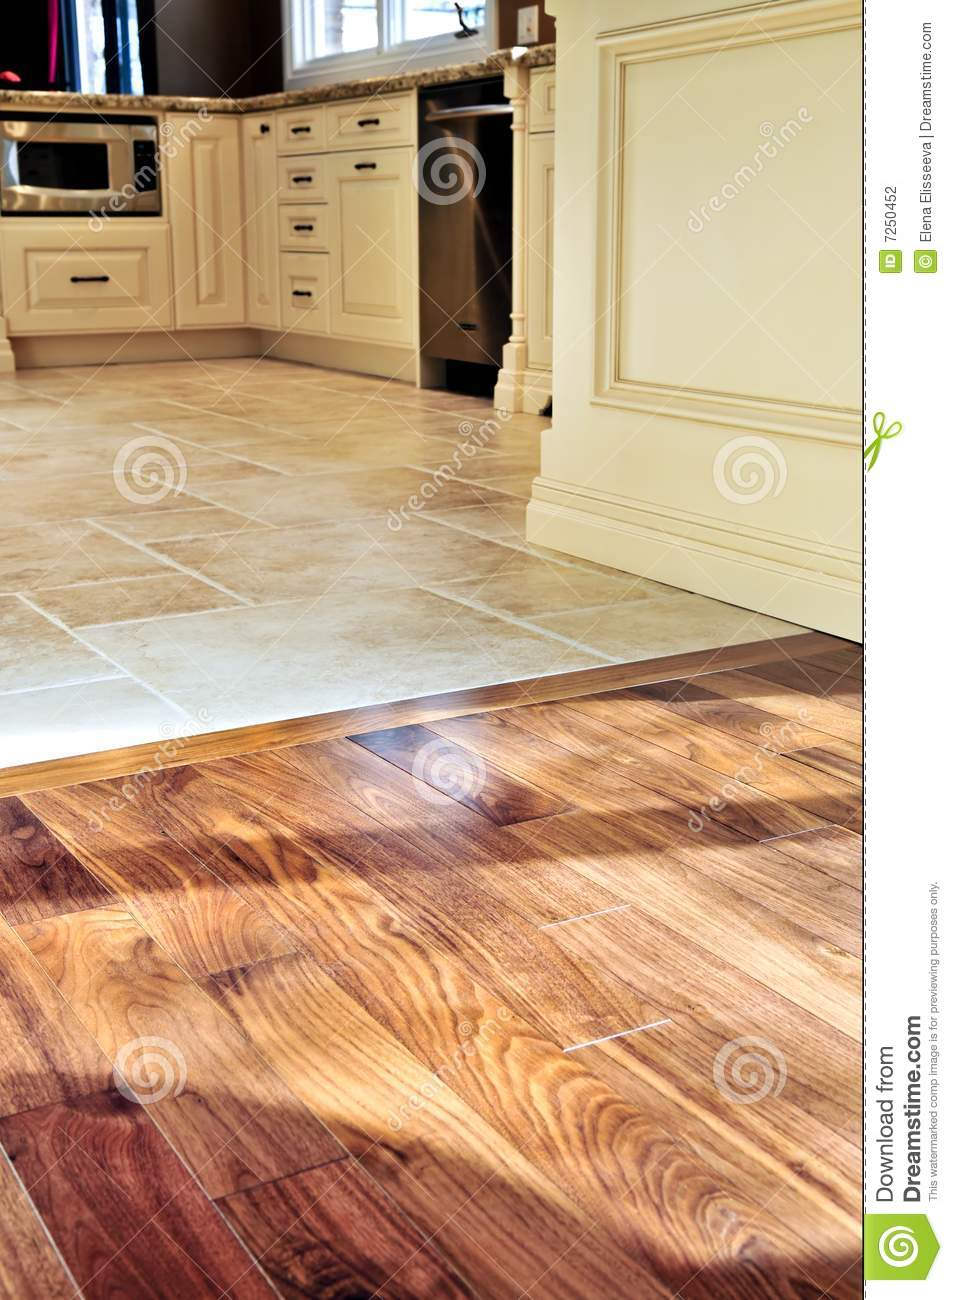 Hardwood and tile floor stock photography image 7250452 for Floor to floor